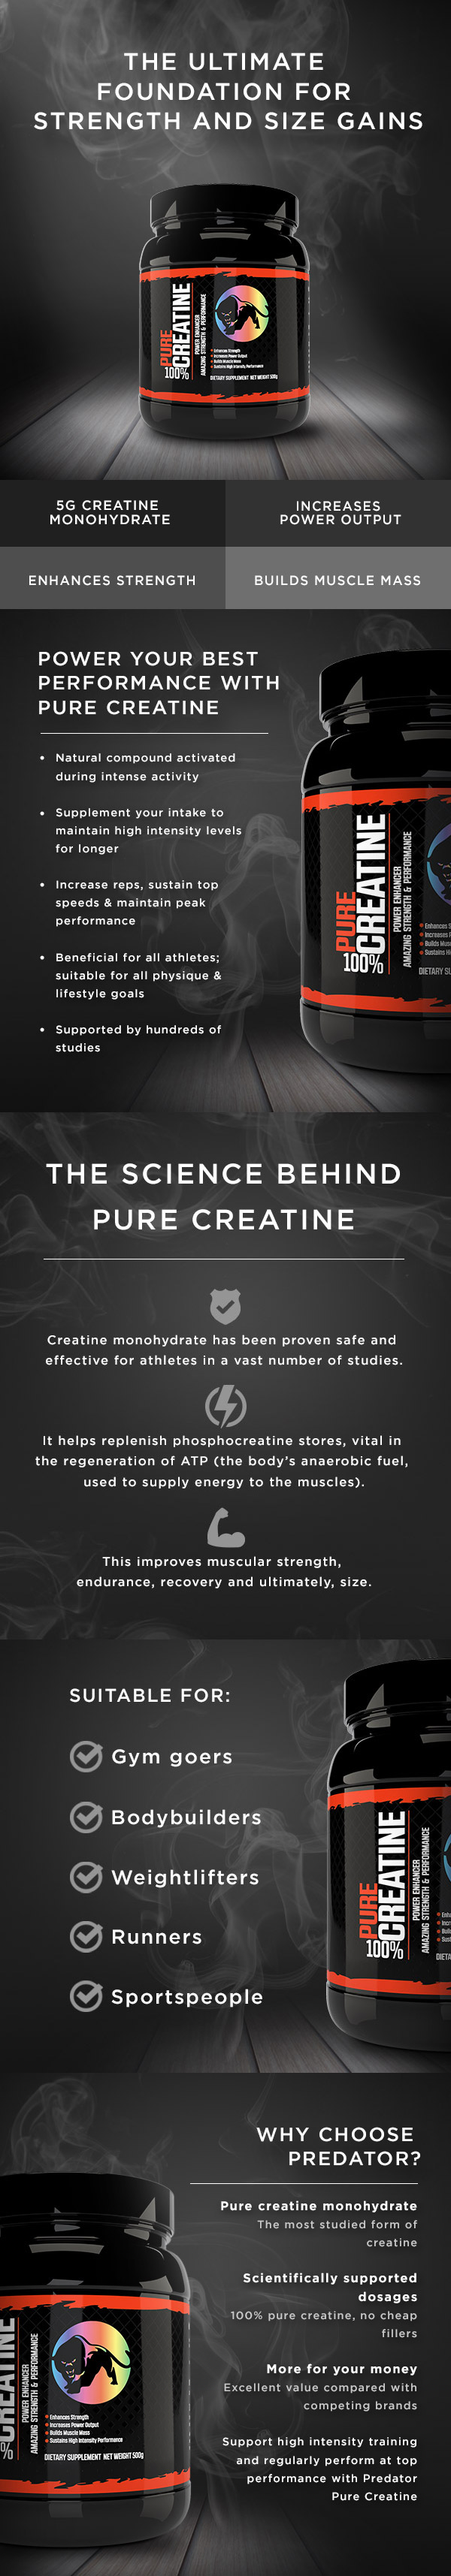 Predator Nutrition Pure Creatine Infographic